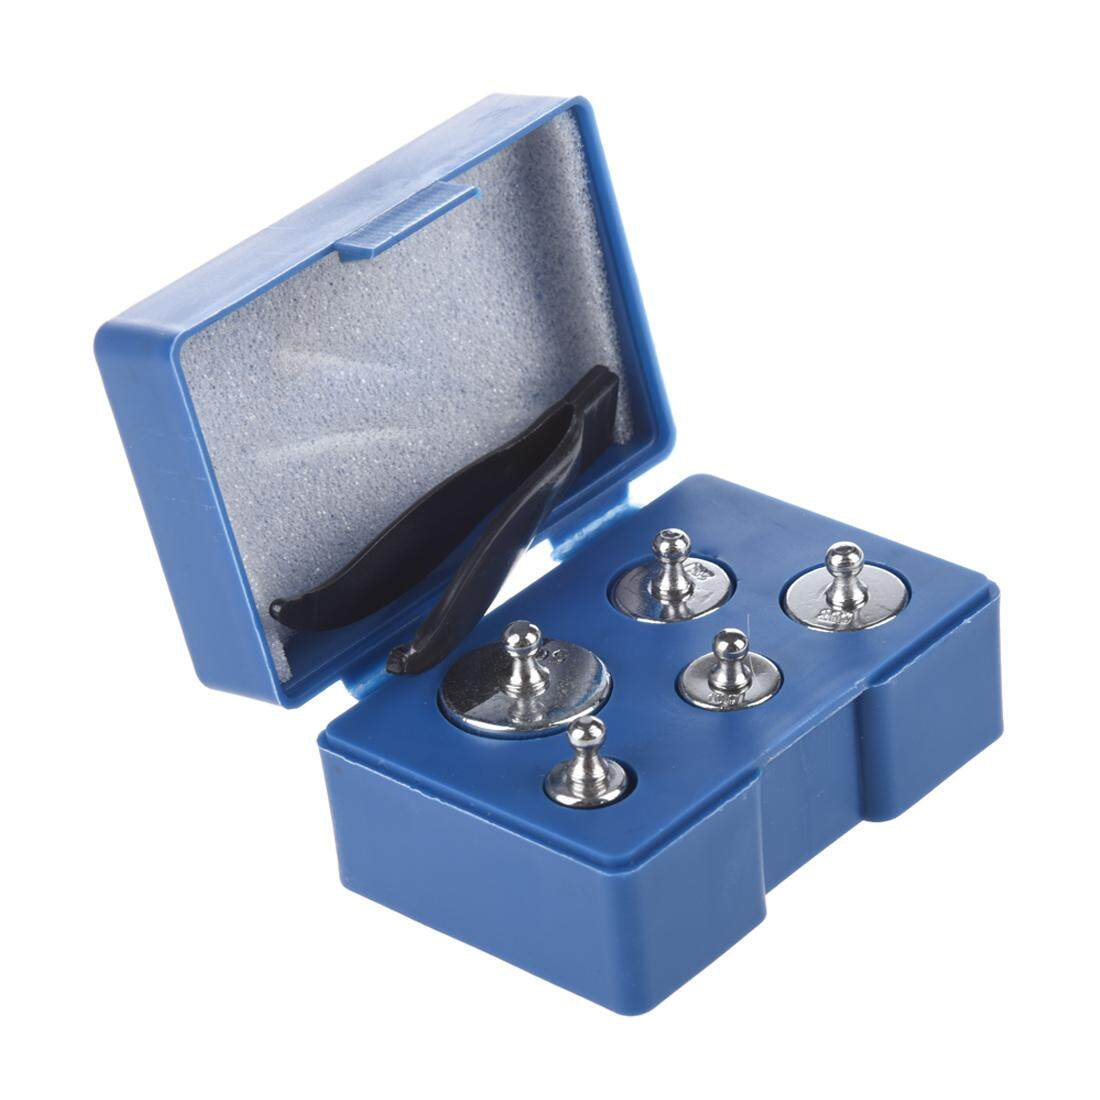 5PCS 50g 20g 10g 5g Grams Precision Chrome Calibration Scale Weight Set Kit - intl